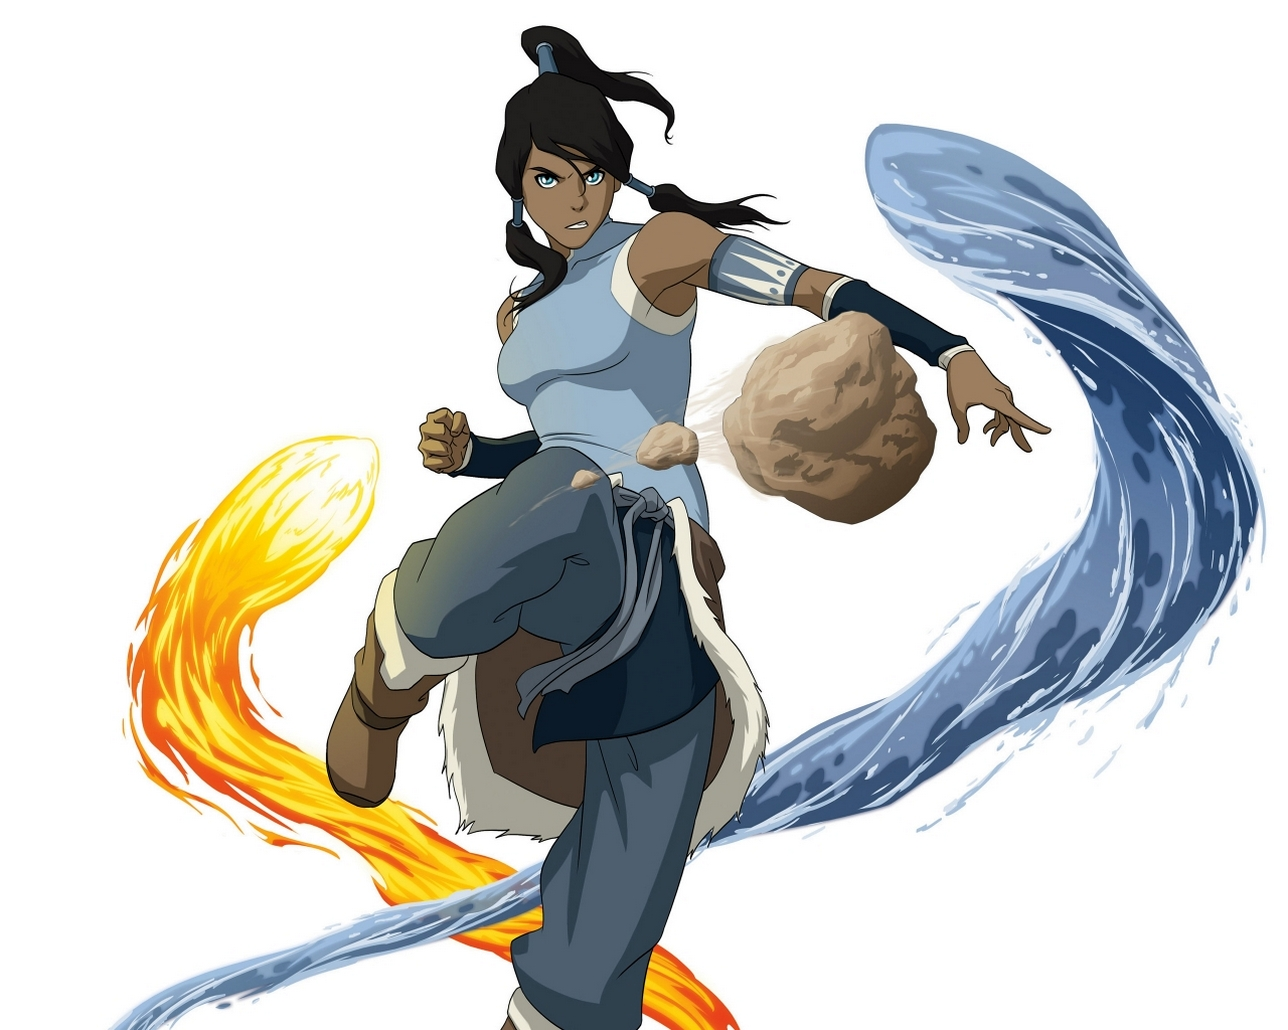 News Photos Korra HQ wallpapersLegend of Korra 1x11 and 1x12 aired 1288x1030